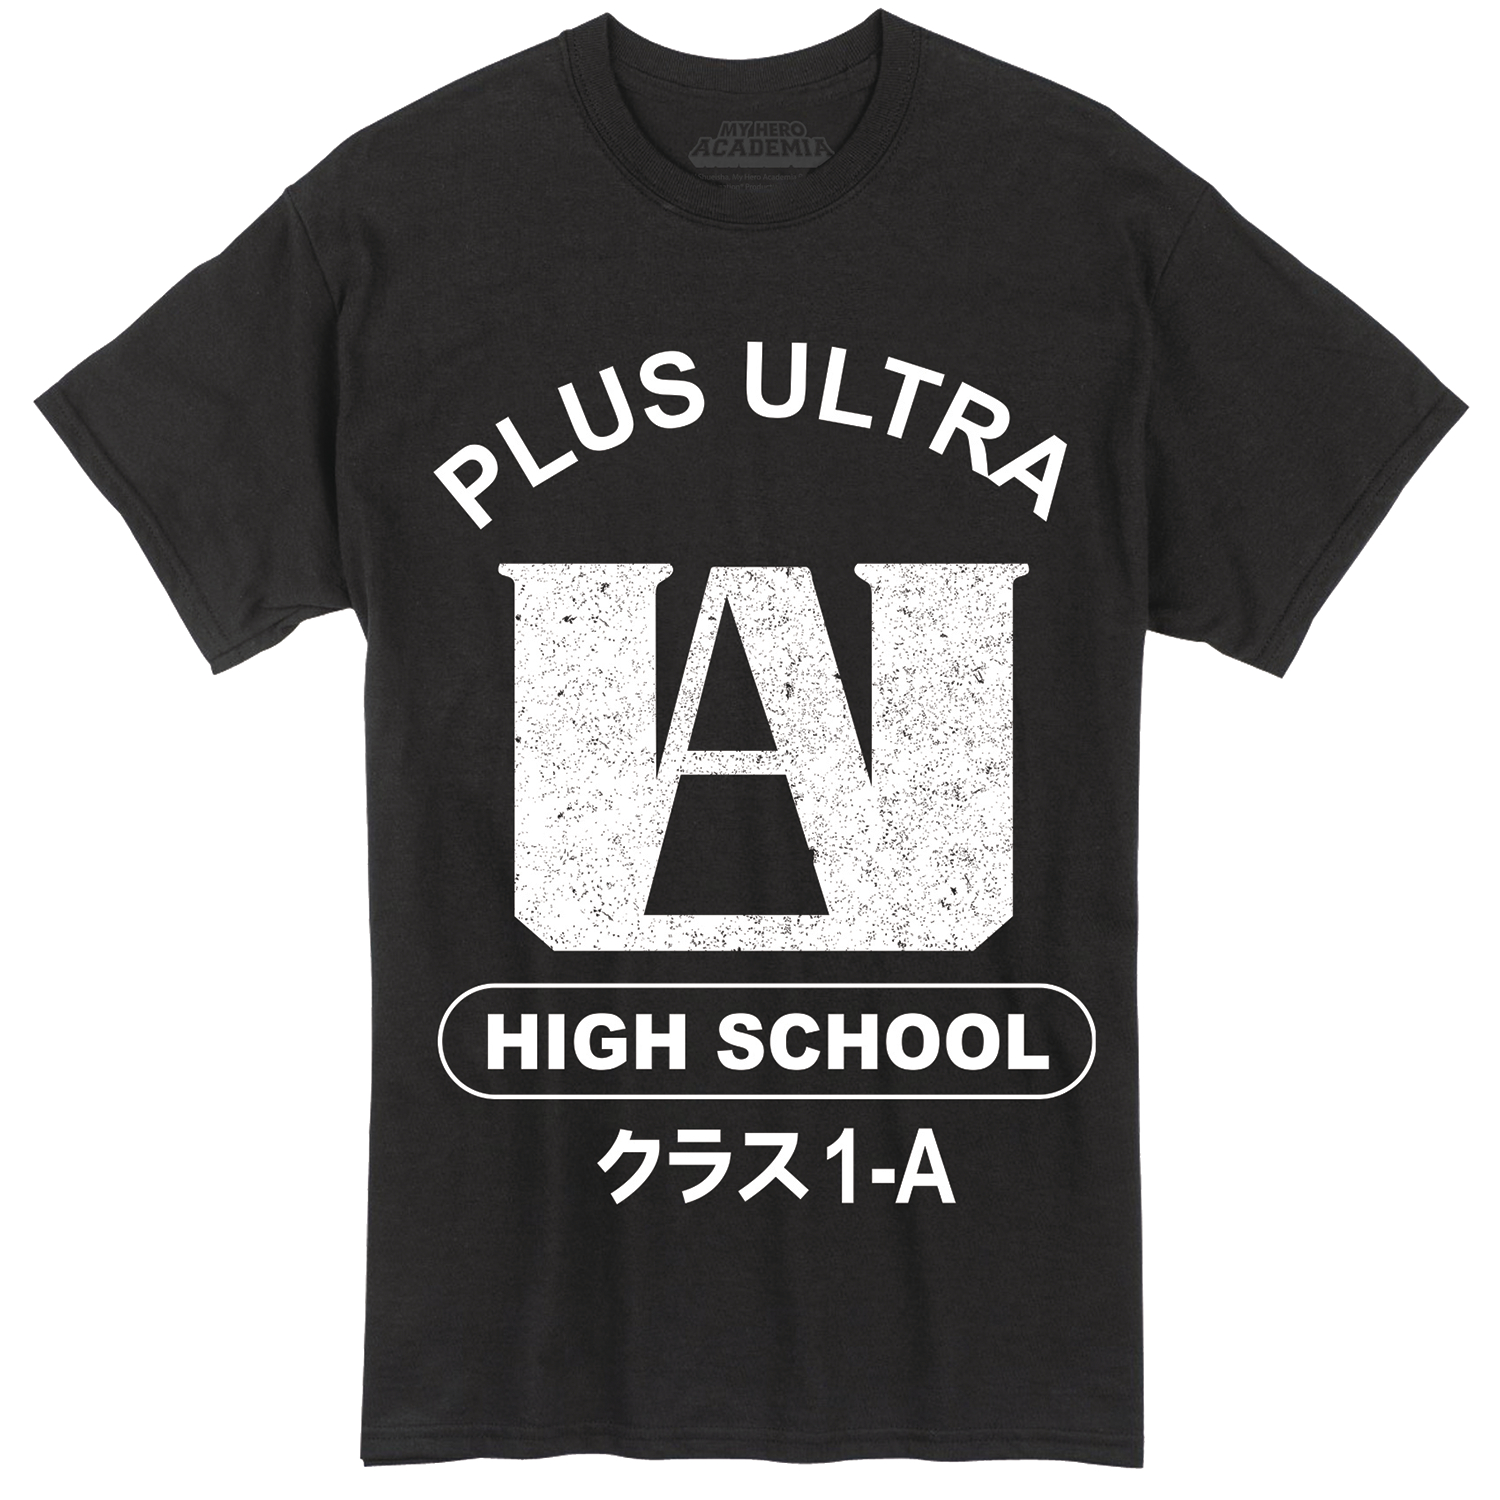 MY HERO ACADEMIA PLUS ULTRA BLK T/S LG